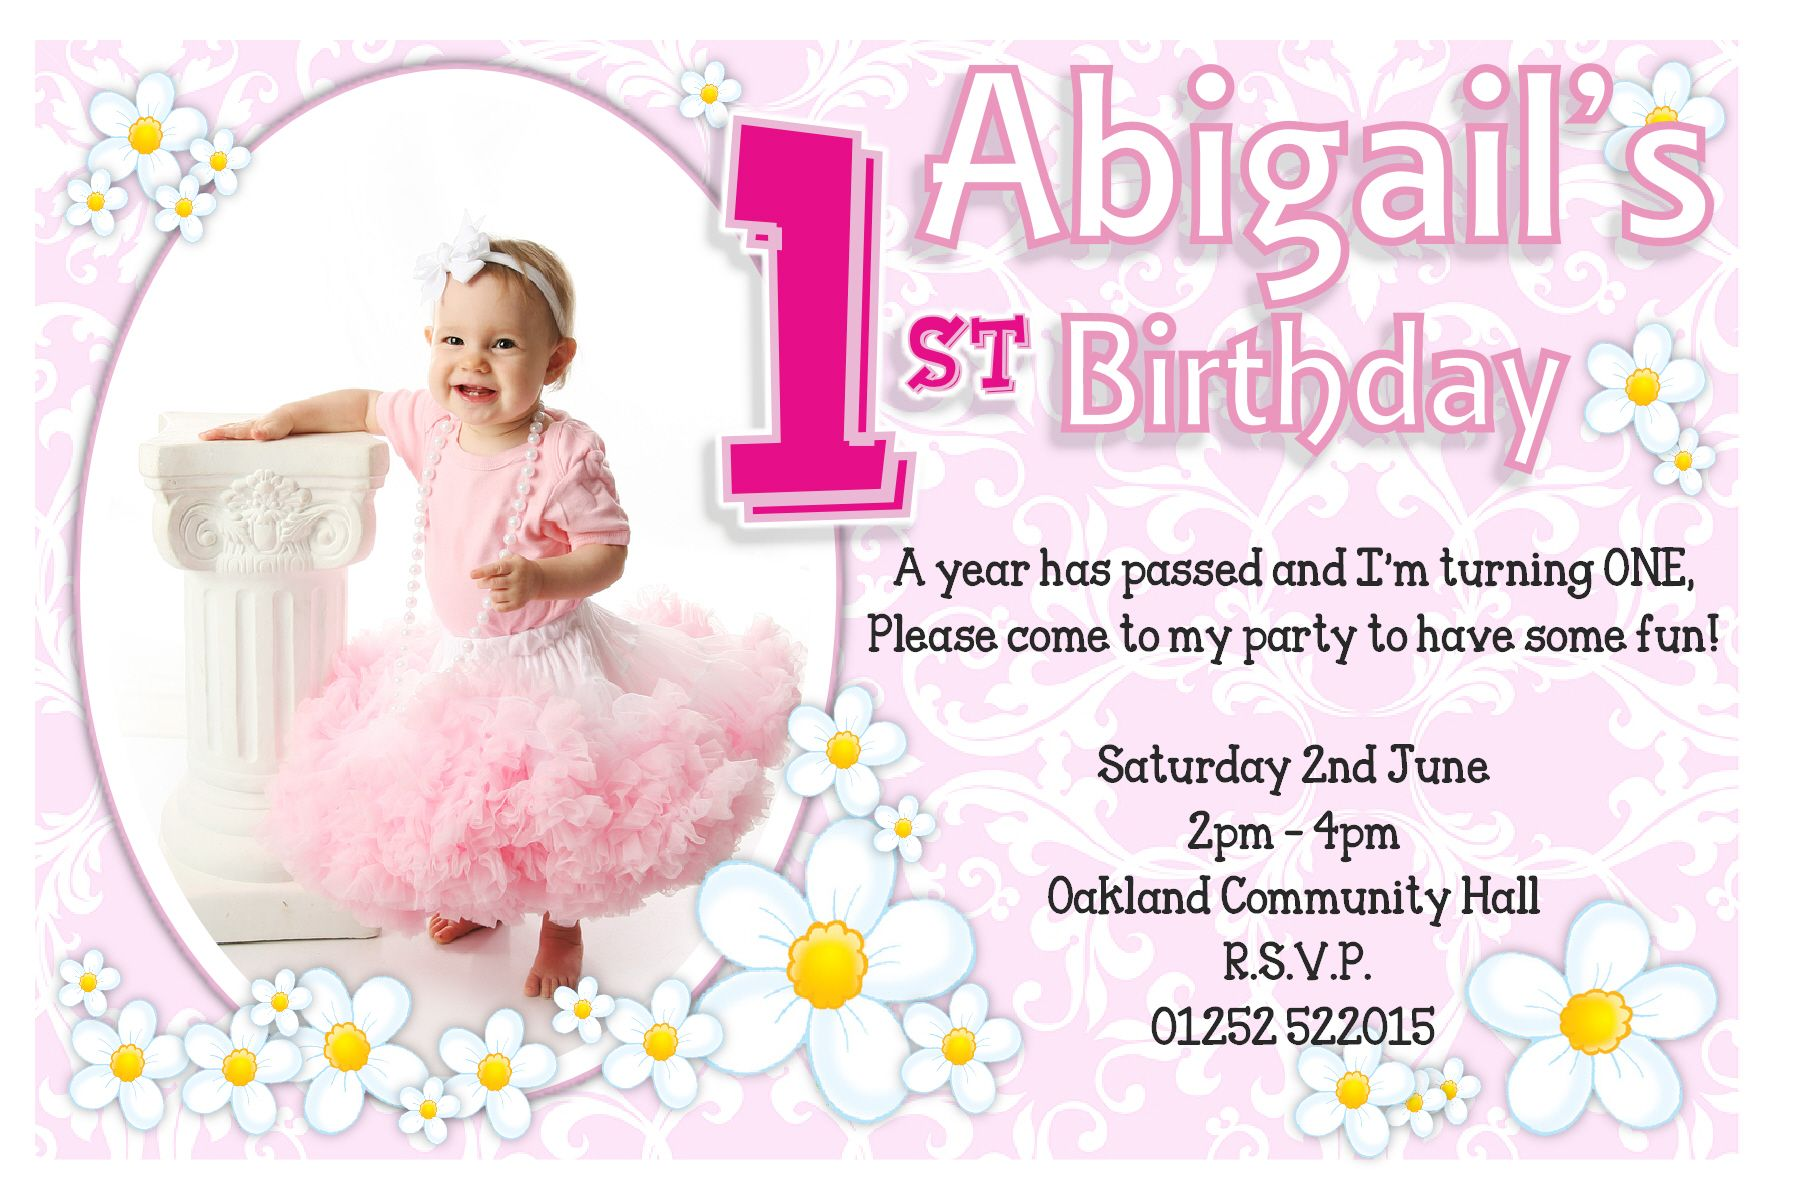 1st year birthday invitation card design ; Baby-Girl-1St-Birthday-Invitation-Templates-and-get-inspired-to-create-your-own-birthday-Invitation-design-with-this-ideas-1